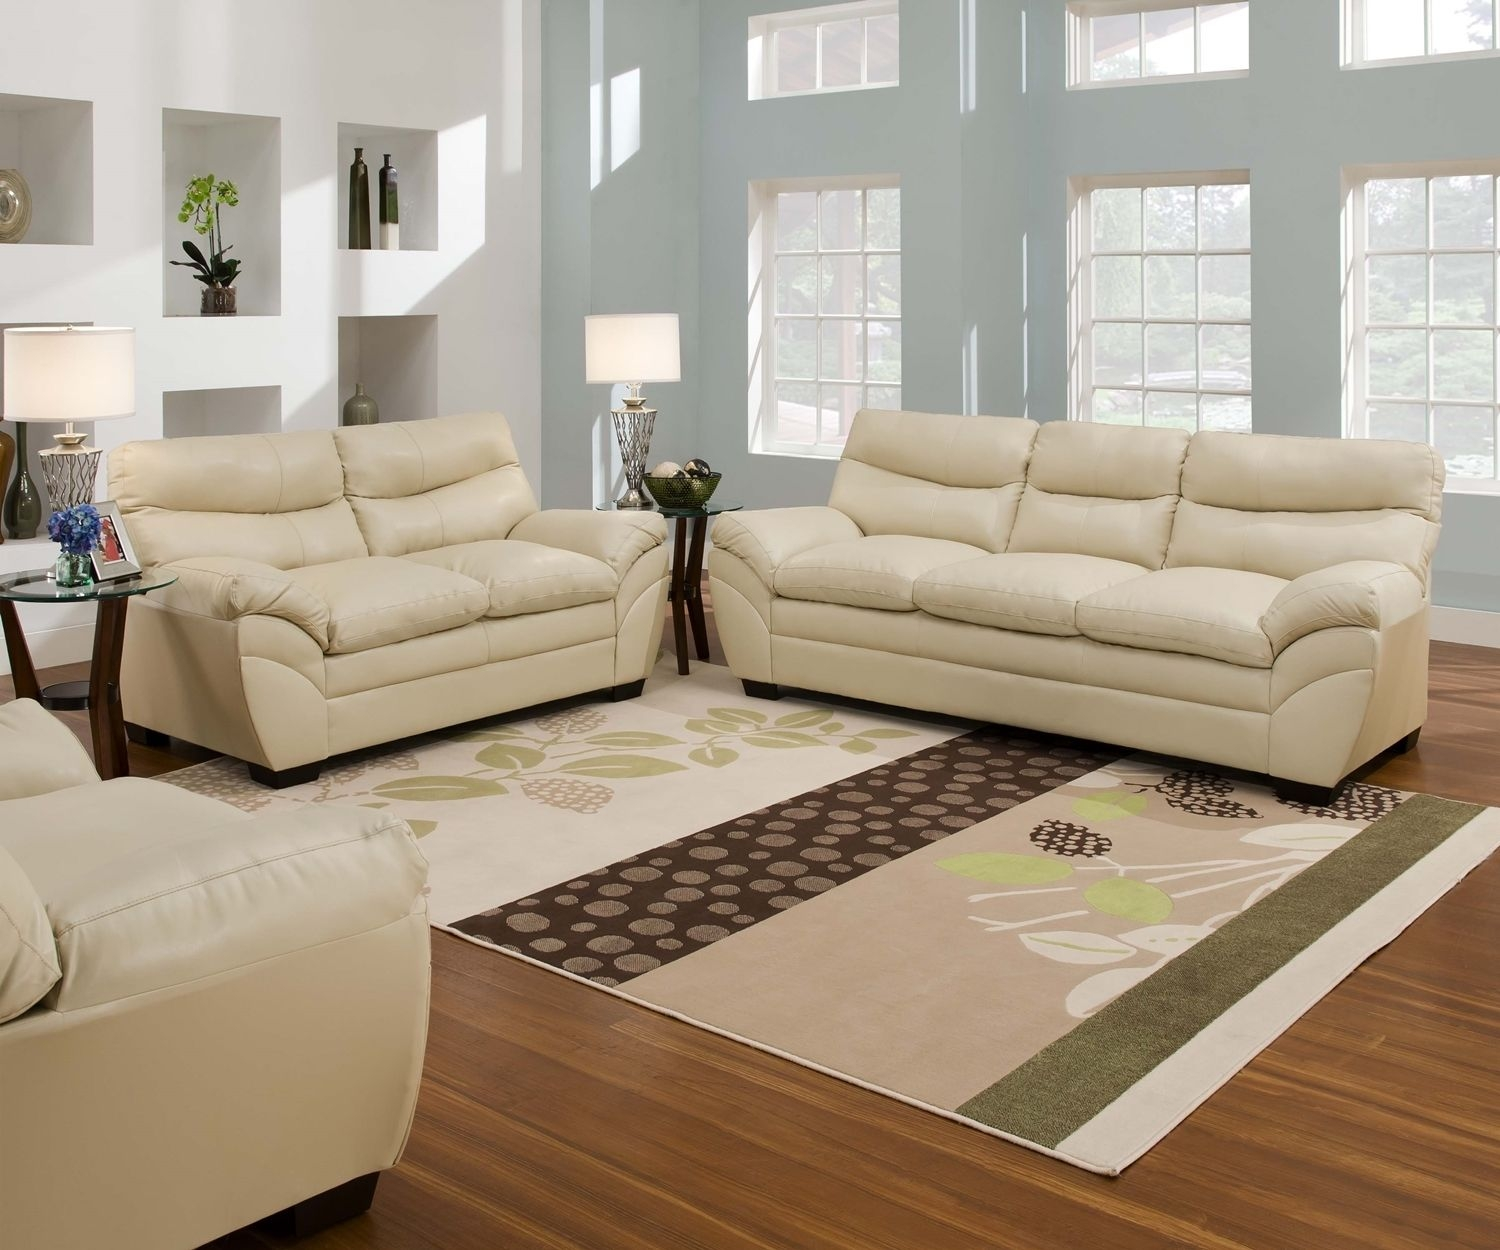 Casual Contemporary Cream Bonded Leather Sofa Set Elpublicante Intended For Casual Sofas And Chairs (Image 4 of 15)